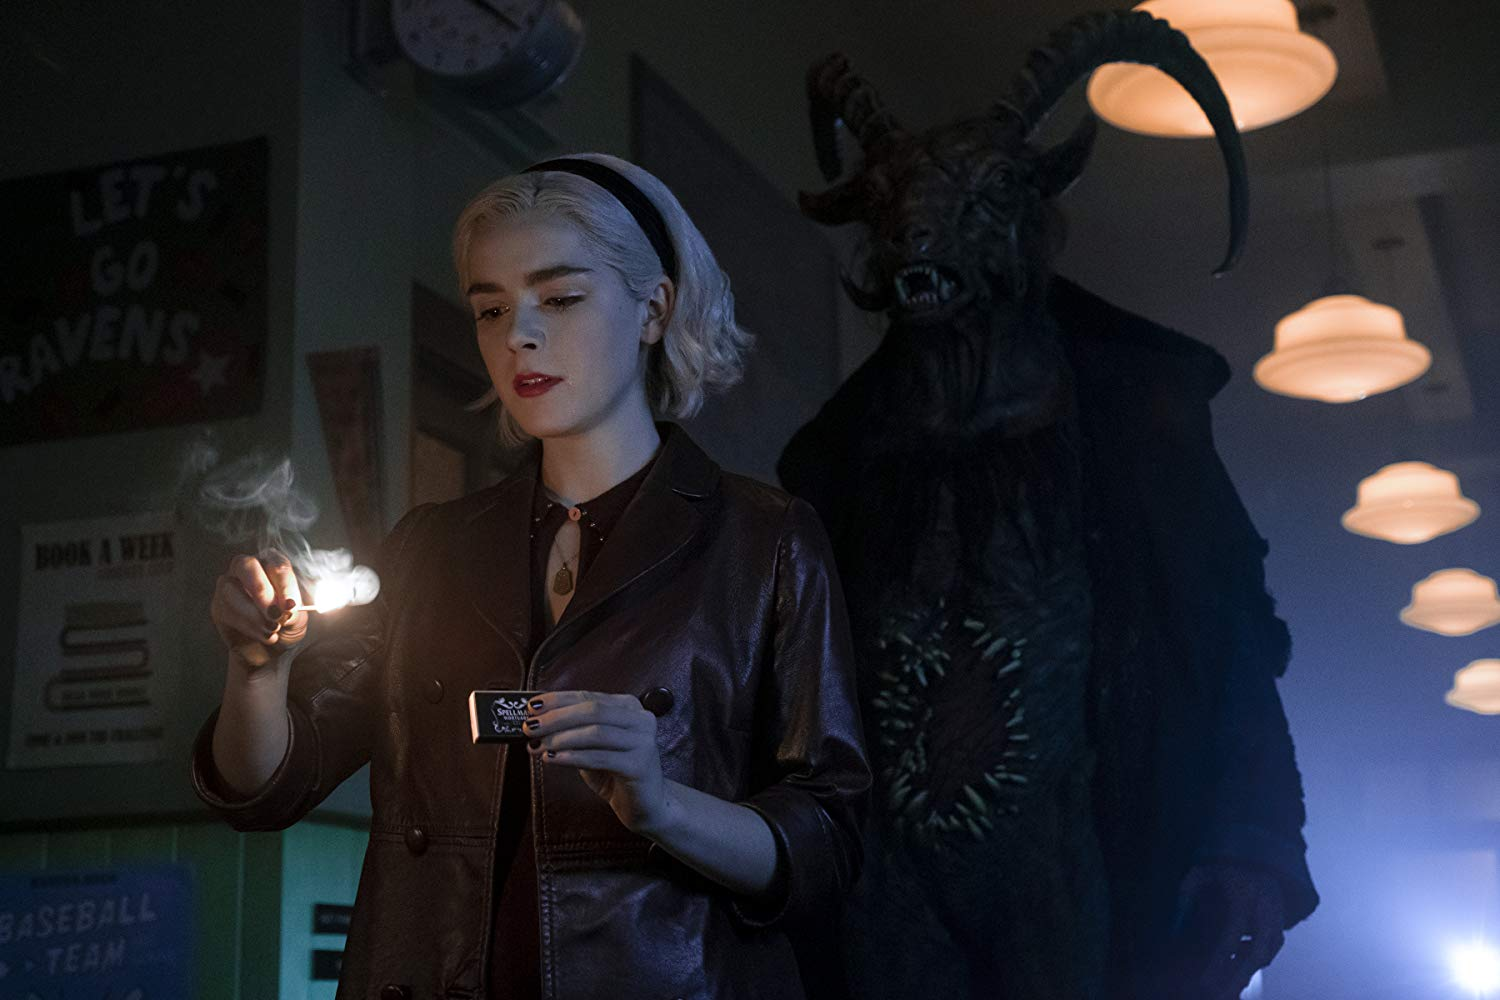 Chilling Adventures of Sabrina - Season 2